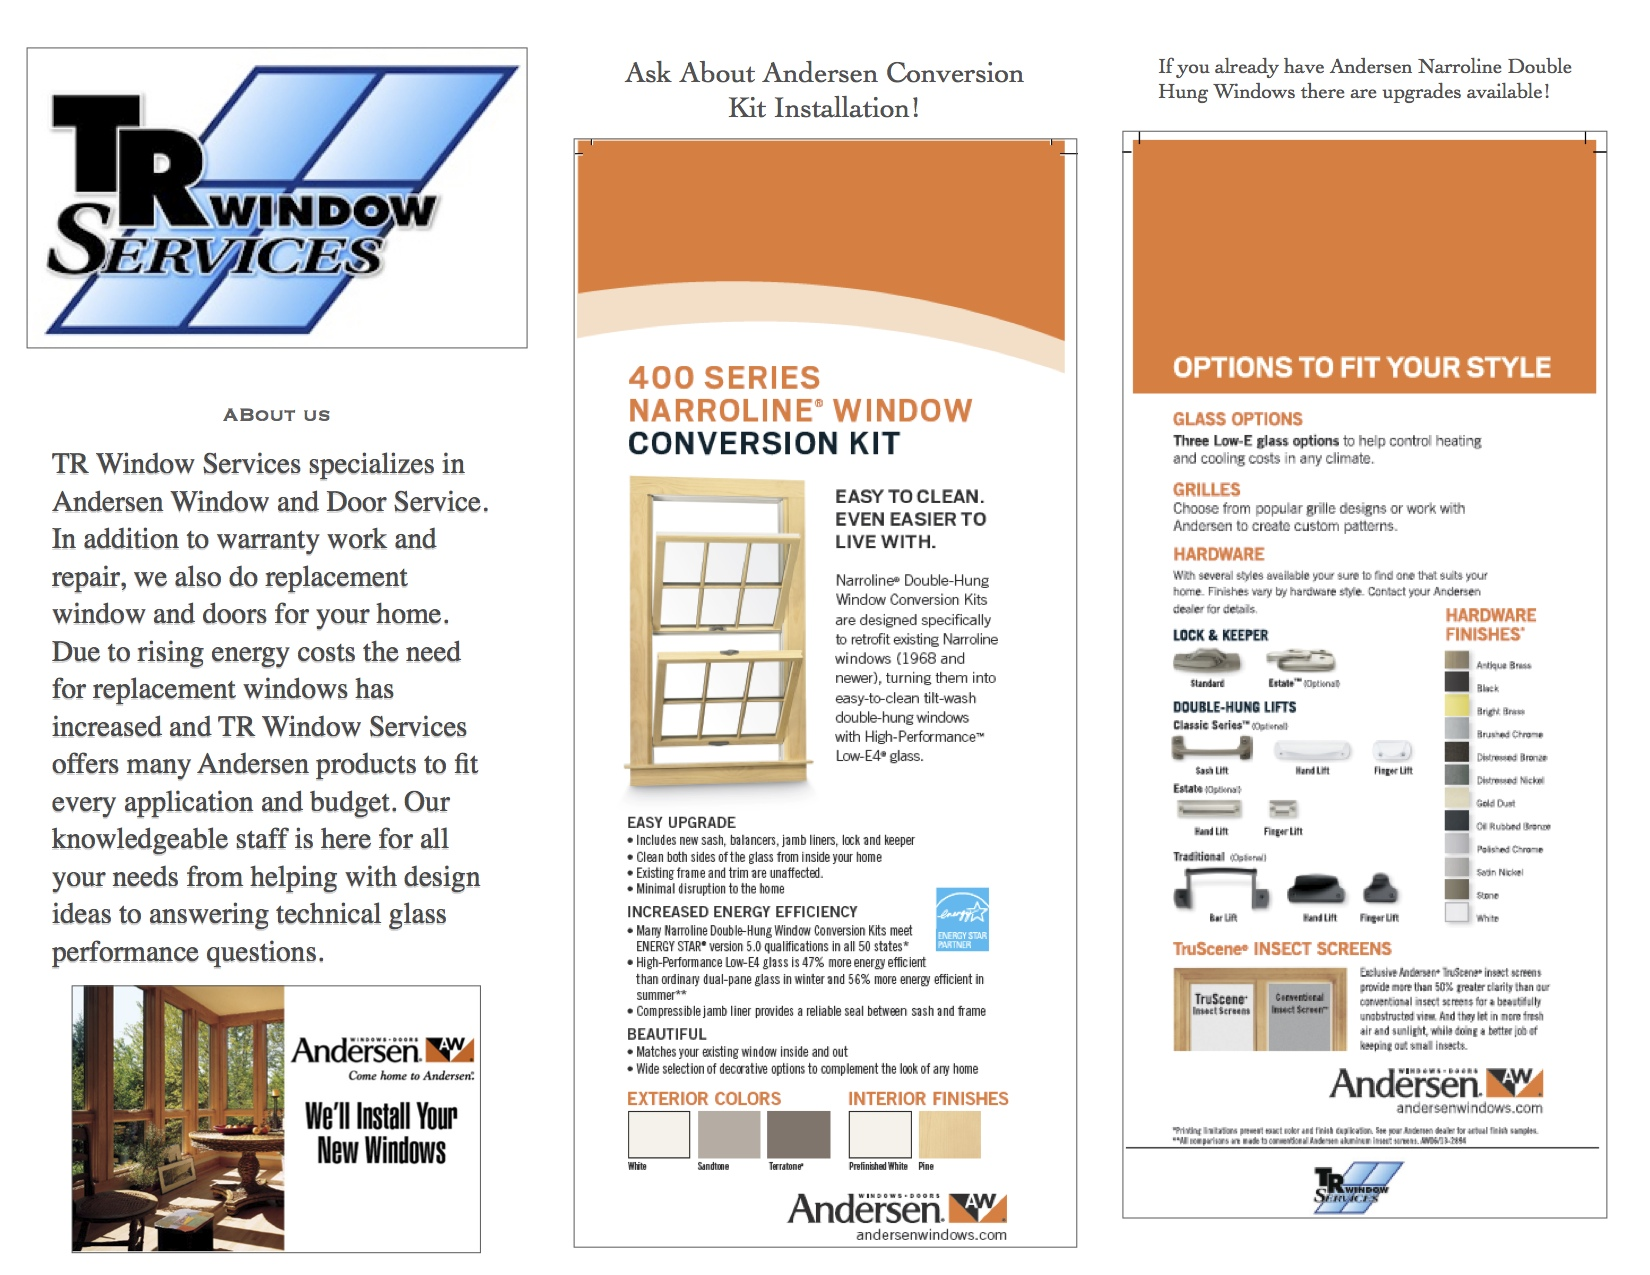 We are well trained in installation of the Andersen Window Conversion Kits